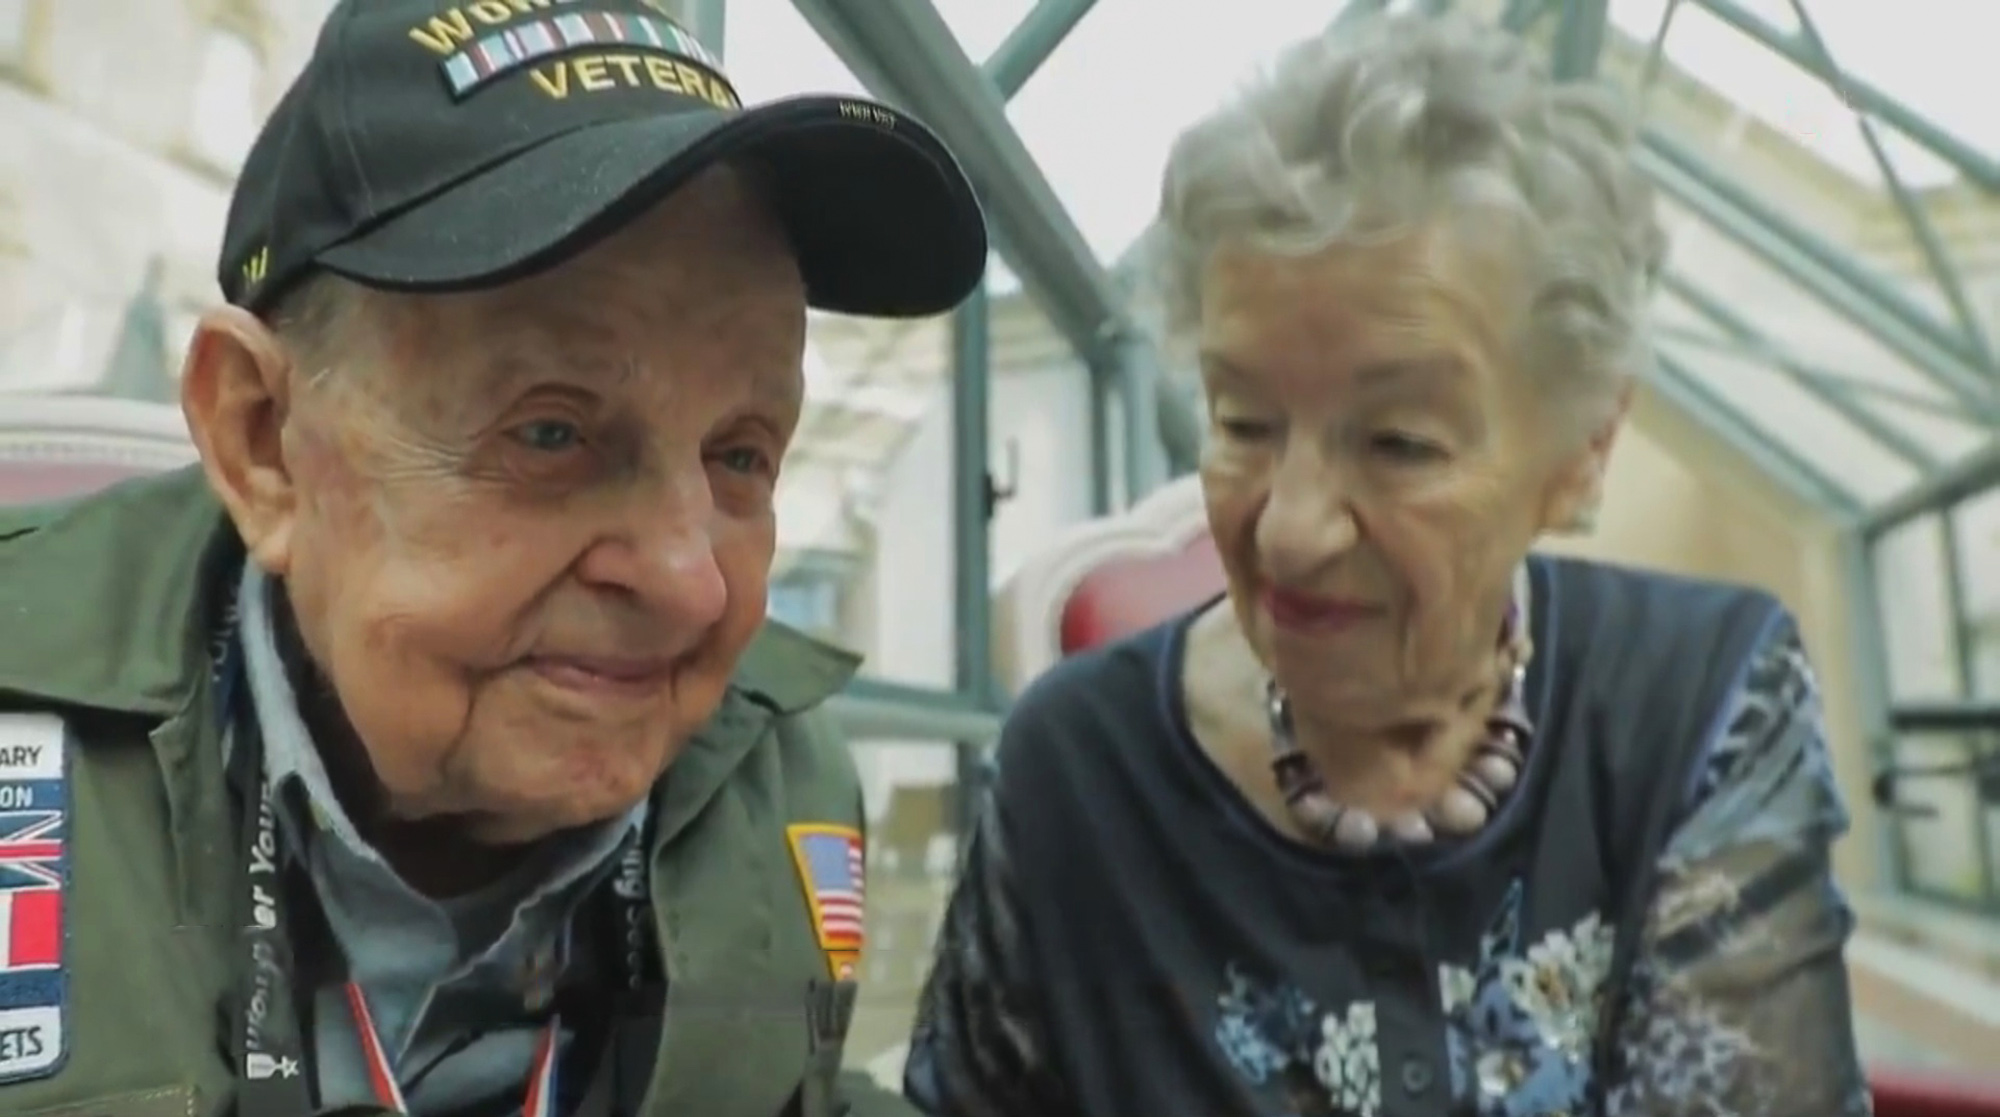 The pair were reunited after 75 years apart. Credit 20 heures le journal  France 2